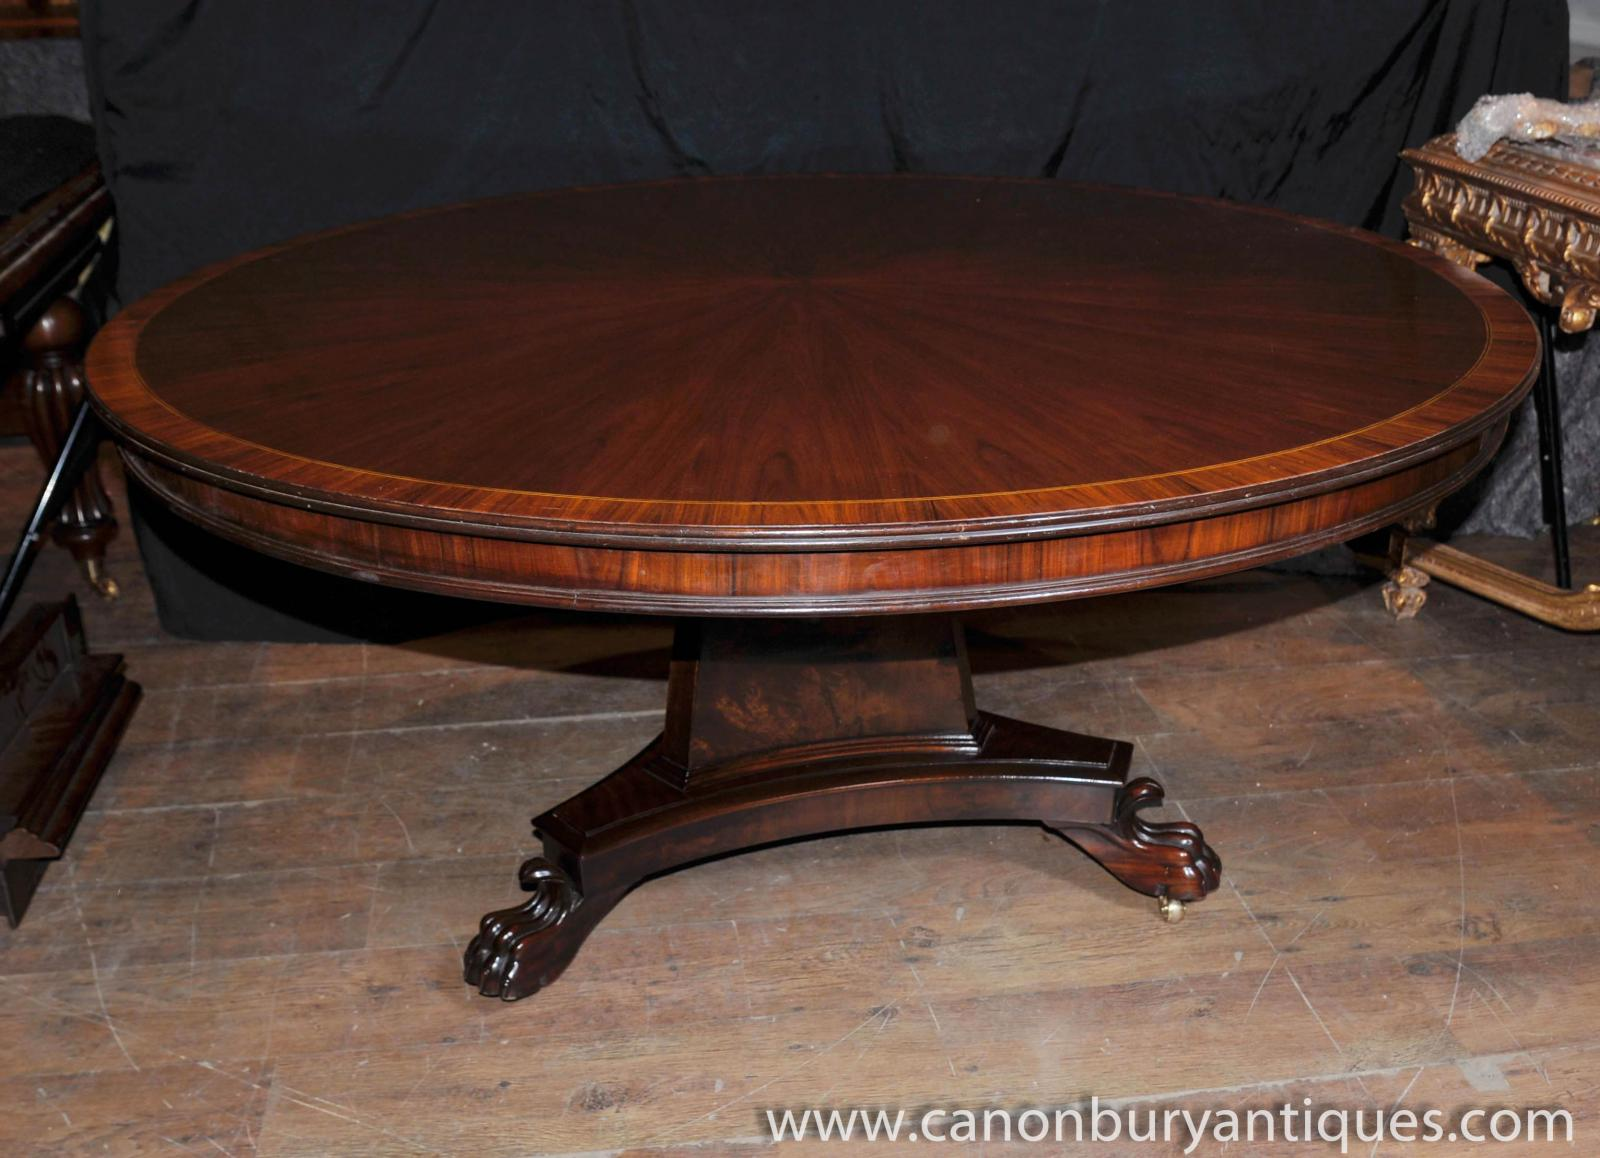 Regency round centre table dining tables rosewood ebay for Round table 85 ortenau